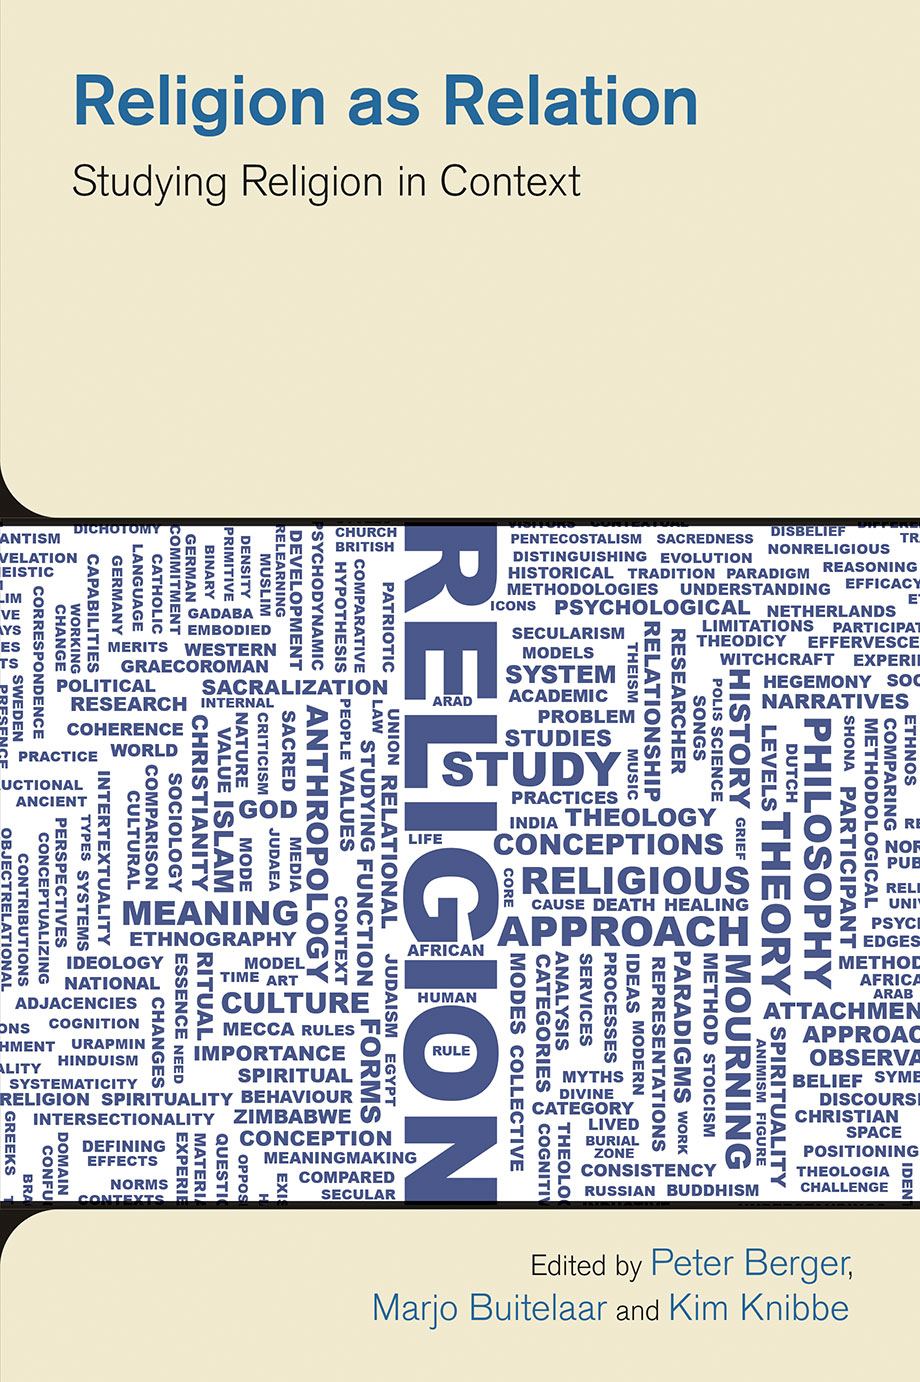 Religion as Relation - Studying Religion in Context - Peter Berger